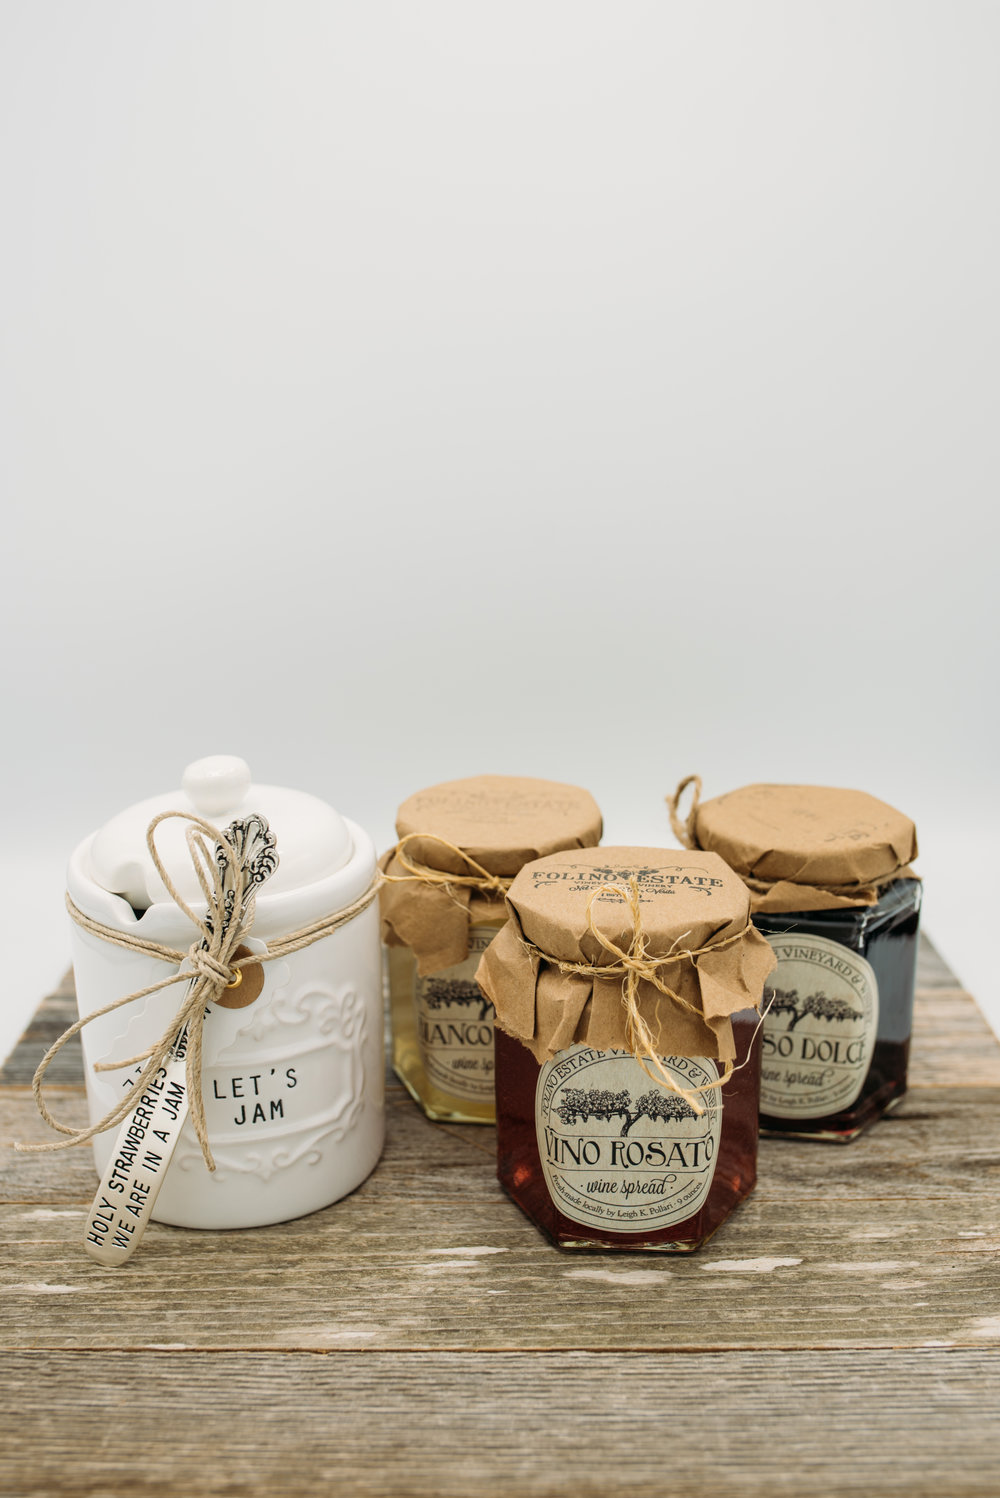 Ceramic Jam Jar -$20.95 Assorted Wine Jams -$14.95 each